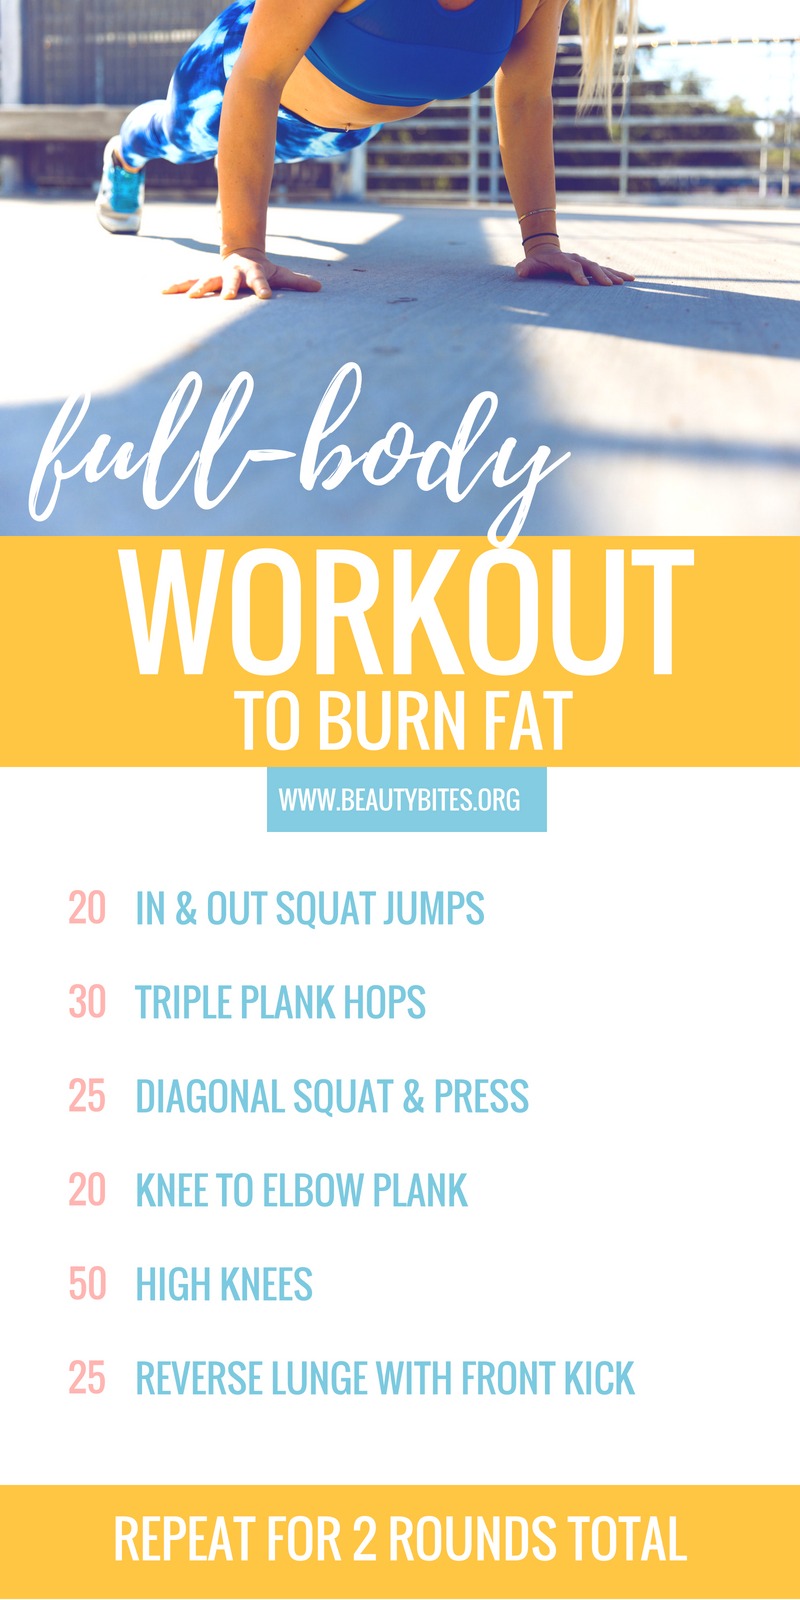 A full-body HIIT workout to lose weight, reduce fat and get toned! I did this workout at home twice: 1st time in 17 min, 2nd time: 15 min! It works your entire body, but I especially felt it in the legs, butt and abs. Record your time to track progress :) | www.beautybites.org